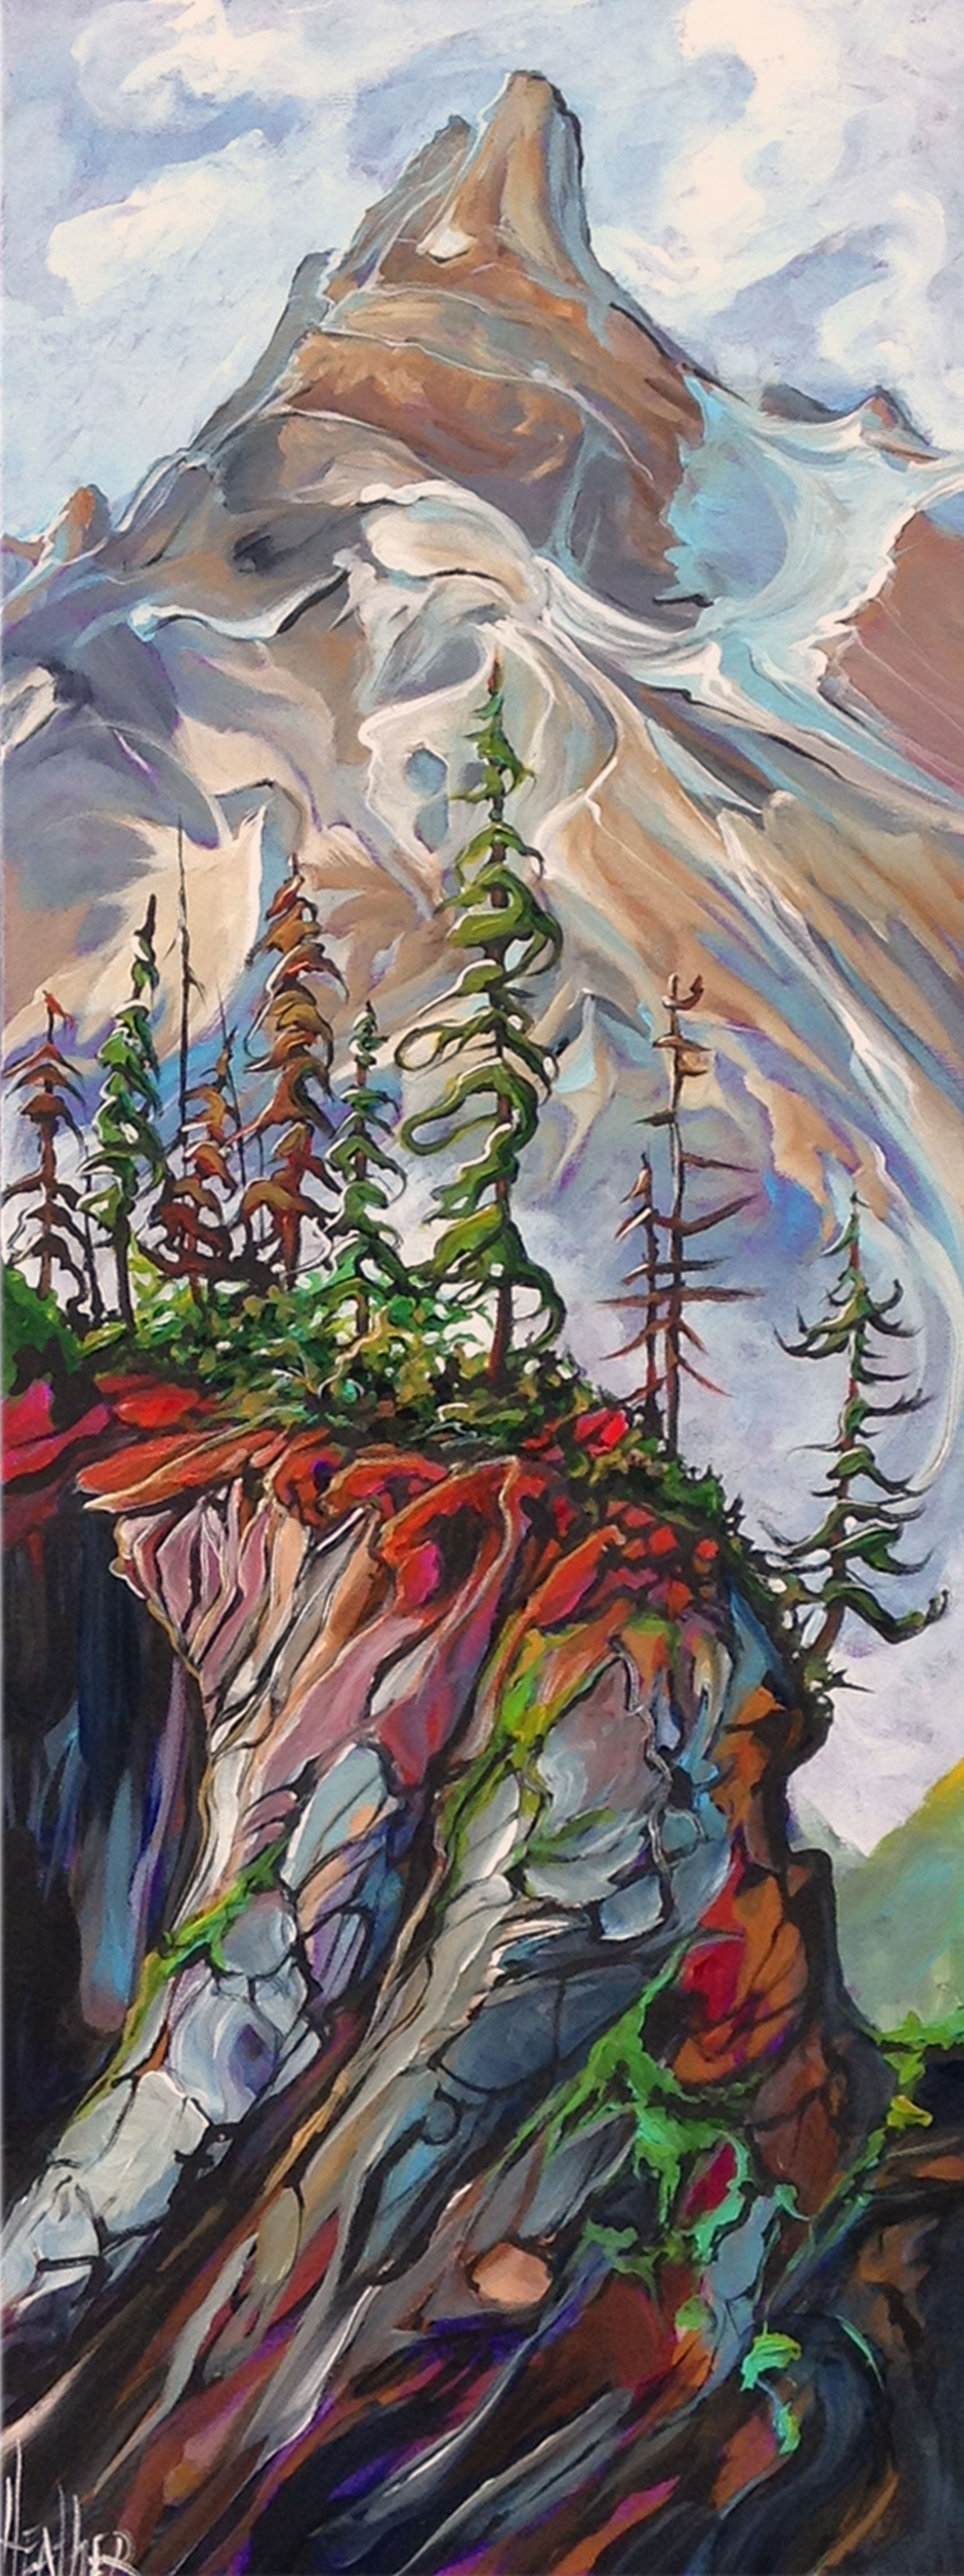 Kananaskis Cliffhangers 16x40 SOLD